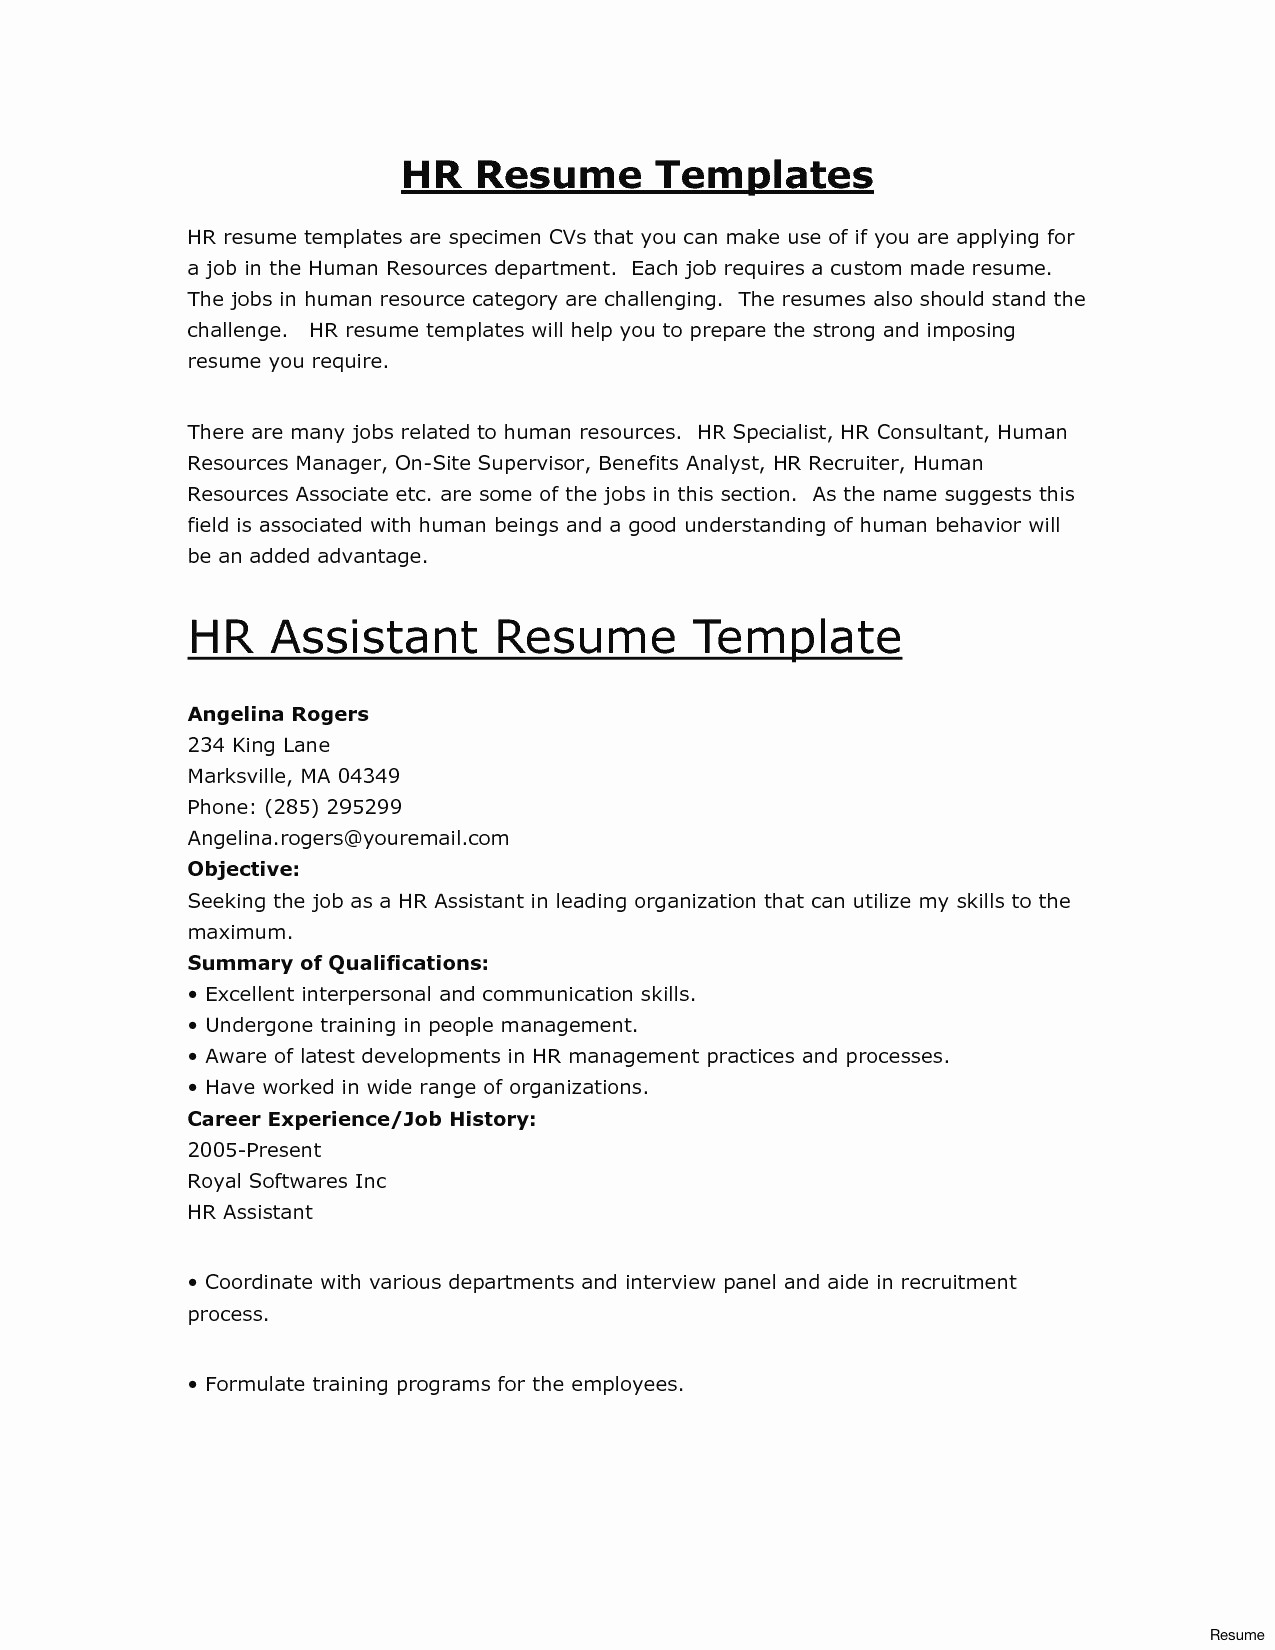 Letter Confirming Employment Free Template - Inspirational Employment Verification Letter Template